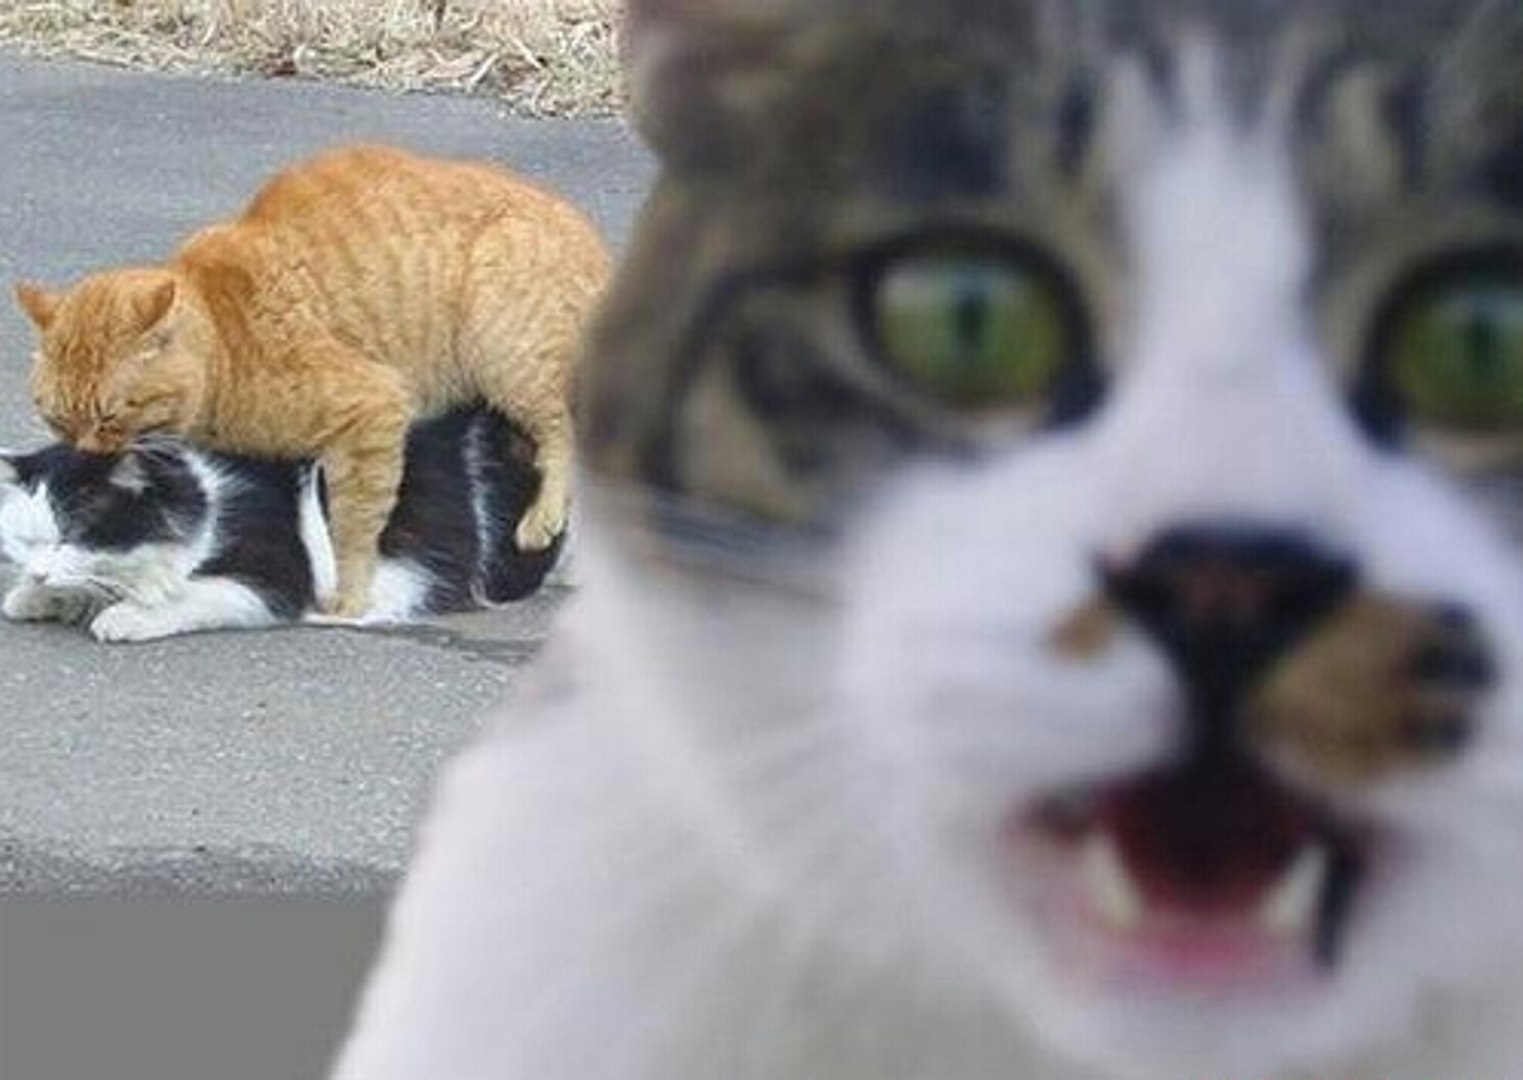 This is probably one of the best photobombs of all time featuring only animals